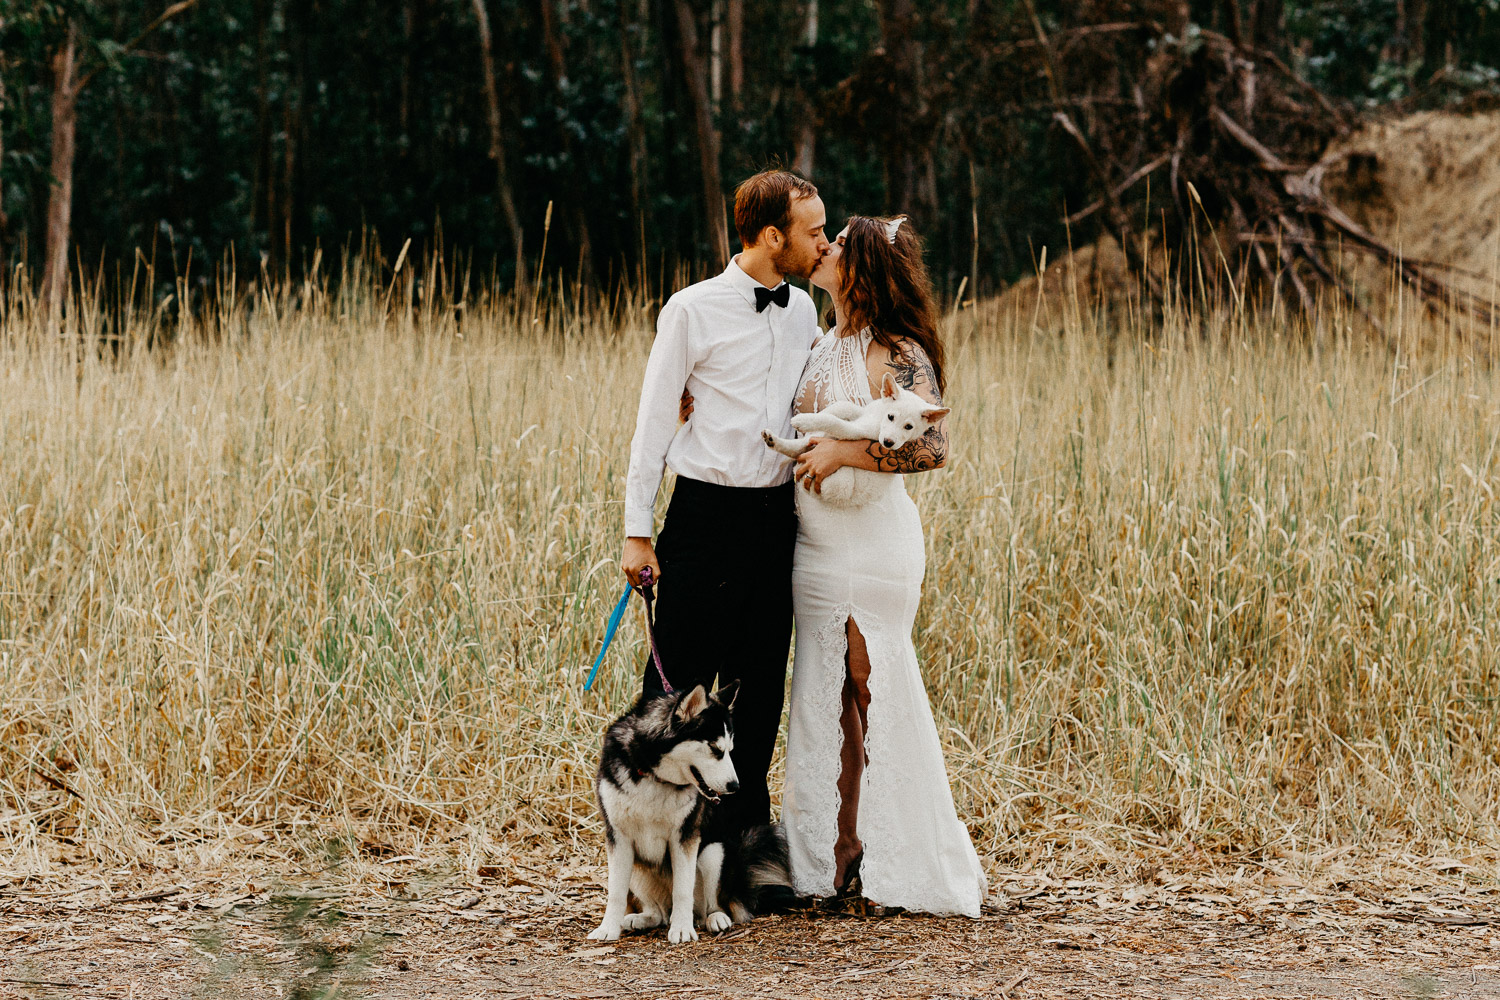 Image of groom kisses bride while groom takes the leash of black husky and bride holds the white husky in the arm